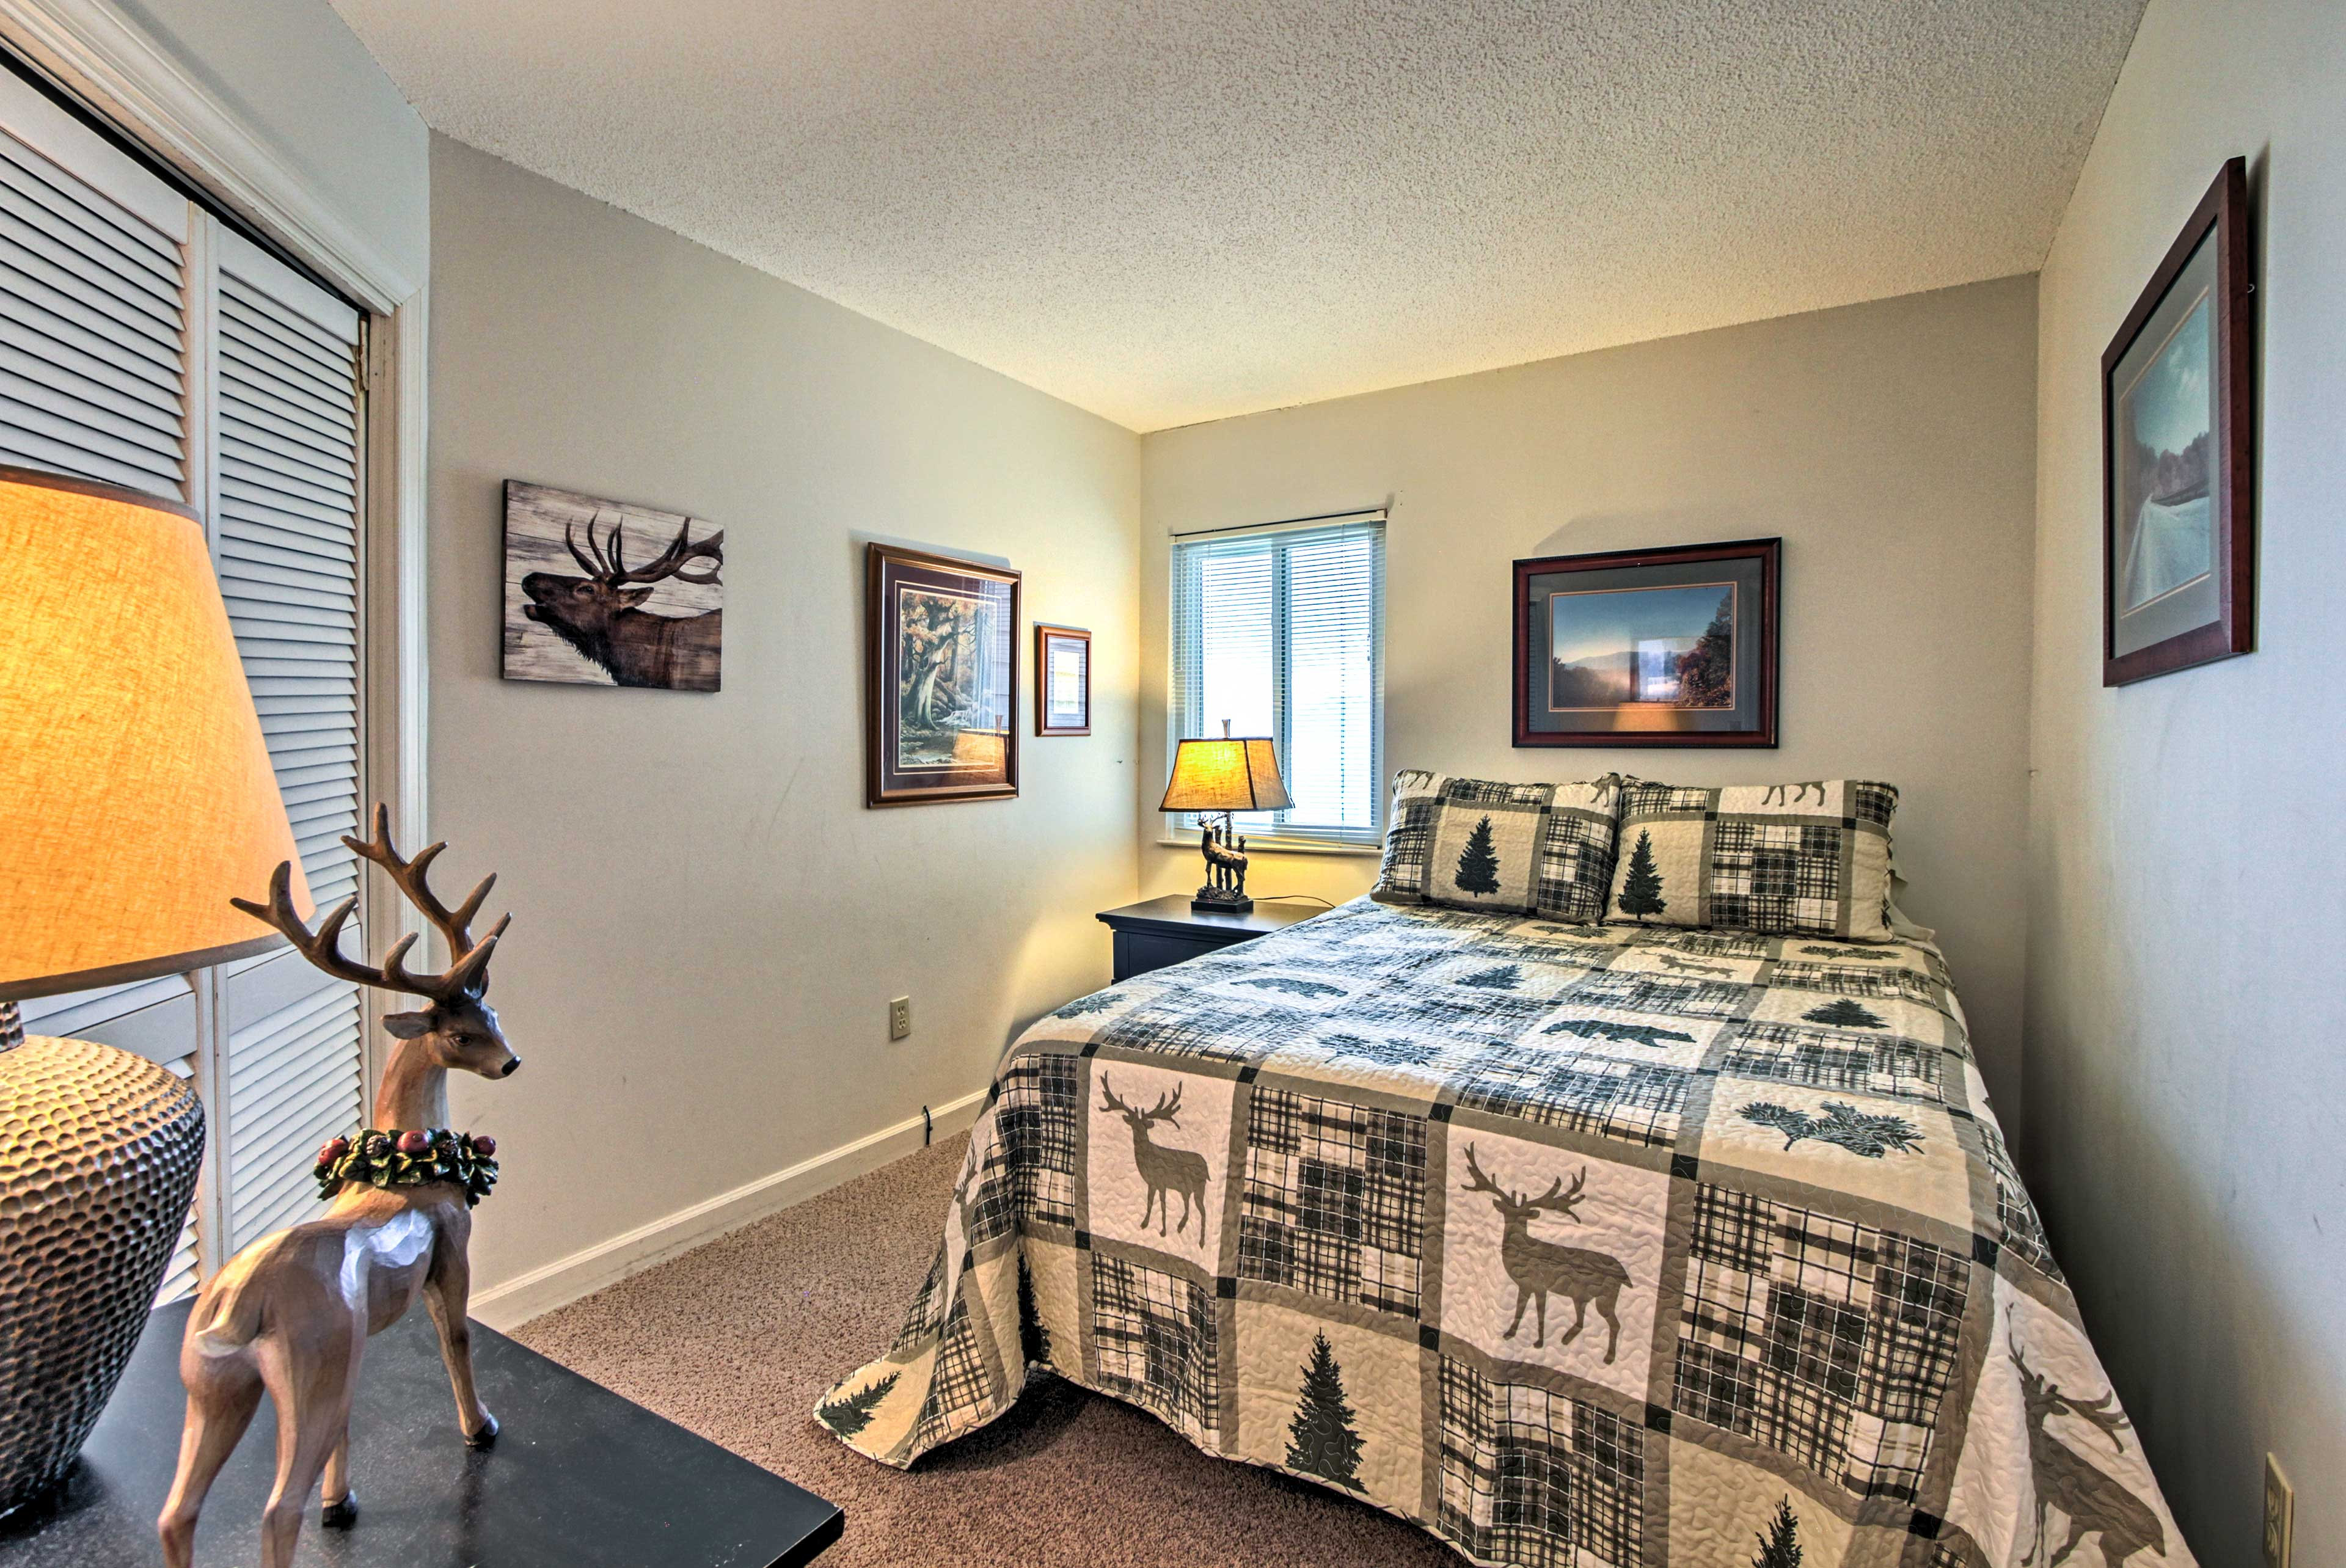 Choose from one of the 3 bedrooms when you're ready to retire.